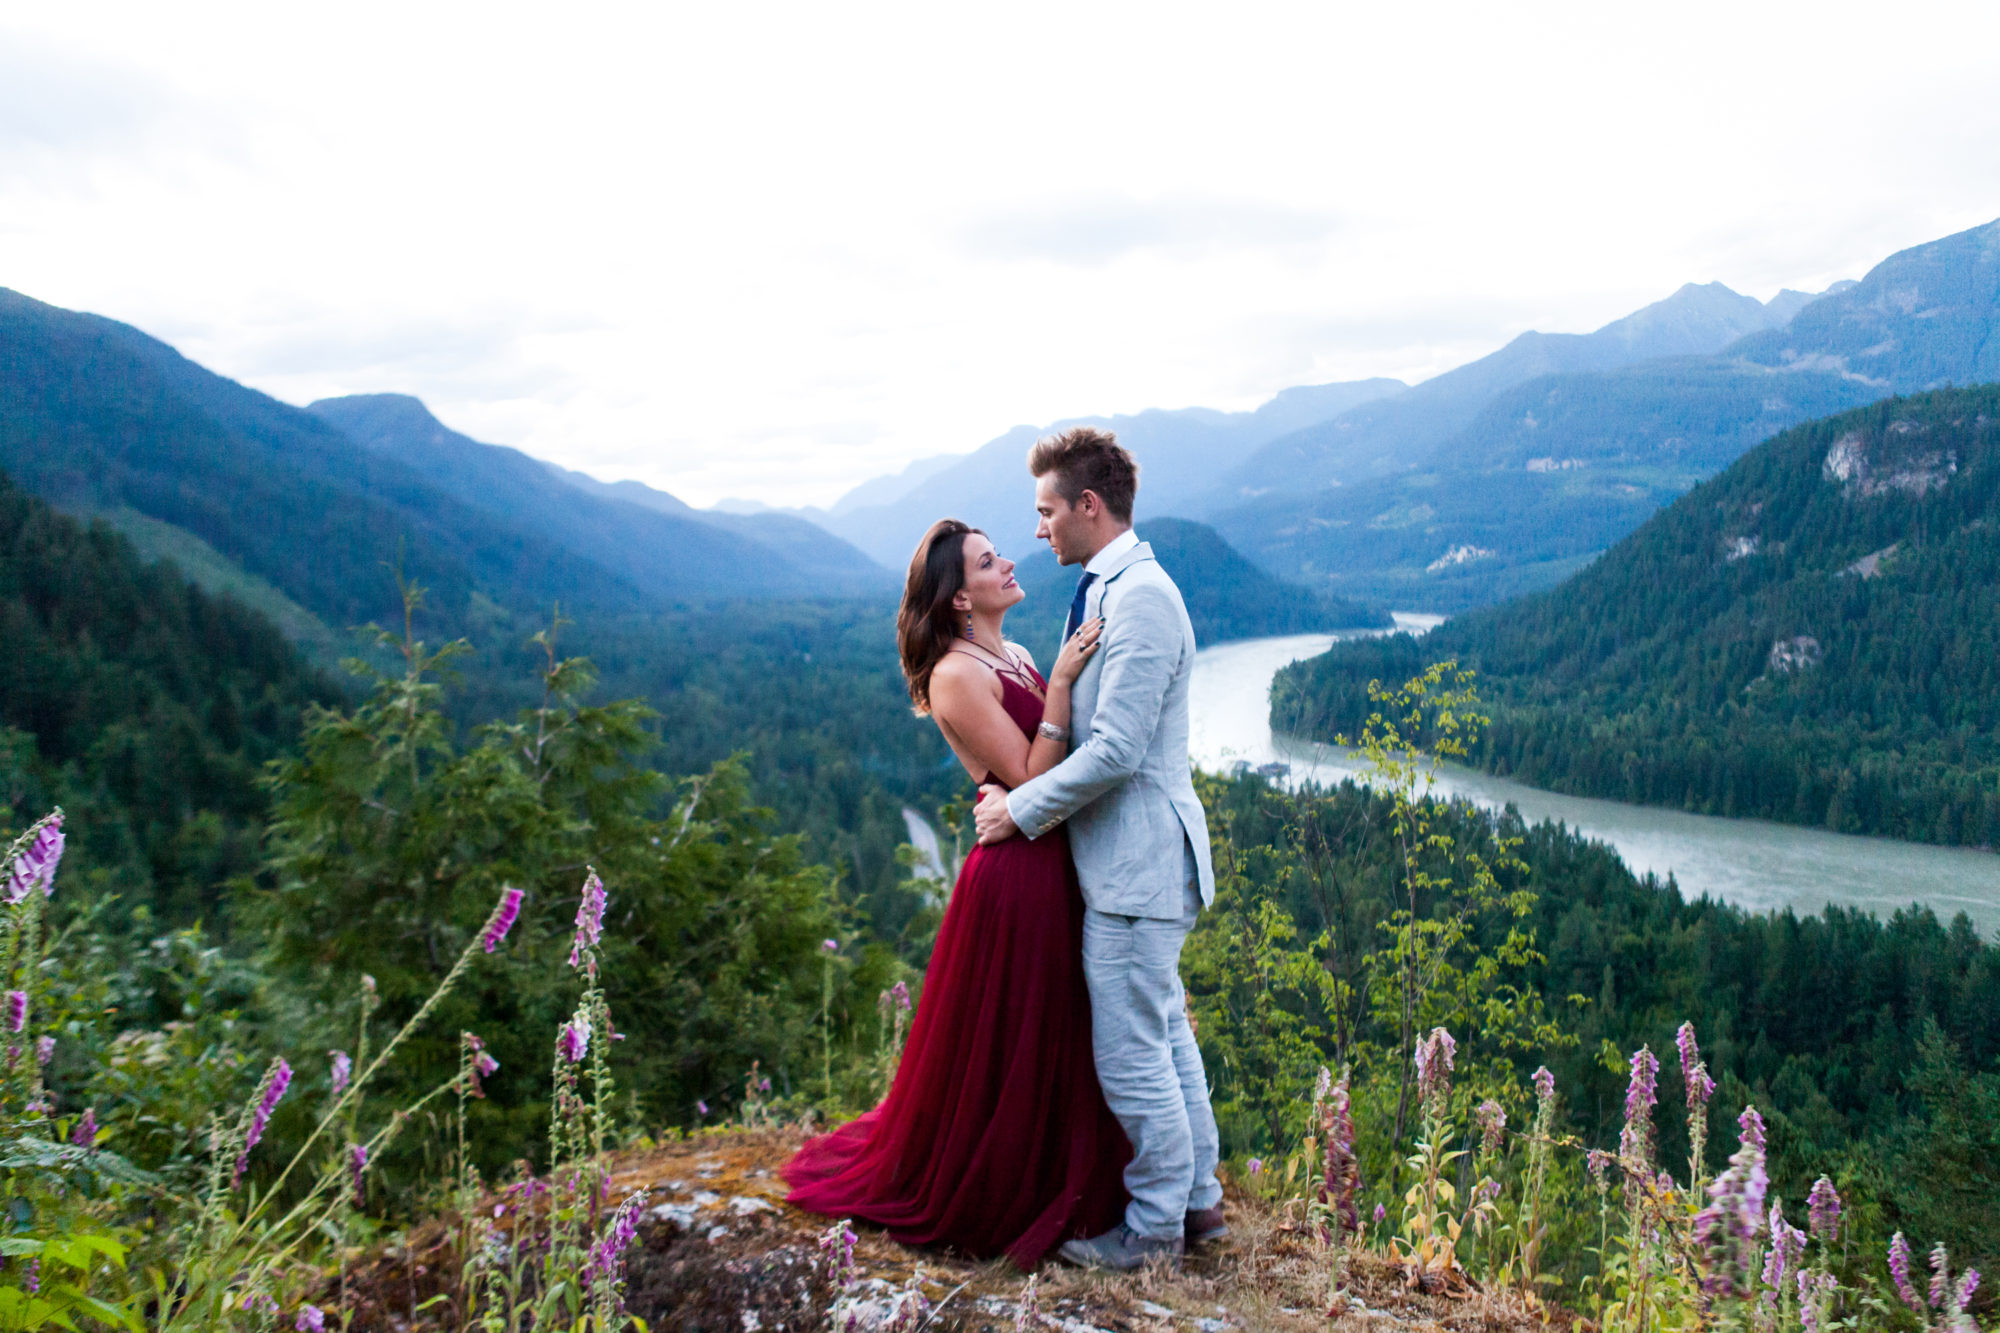 Mountain Top Engagement Wedding Hope British Columbia Zsuzsi Pal Photography Red Dress